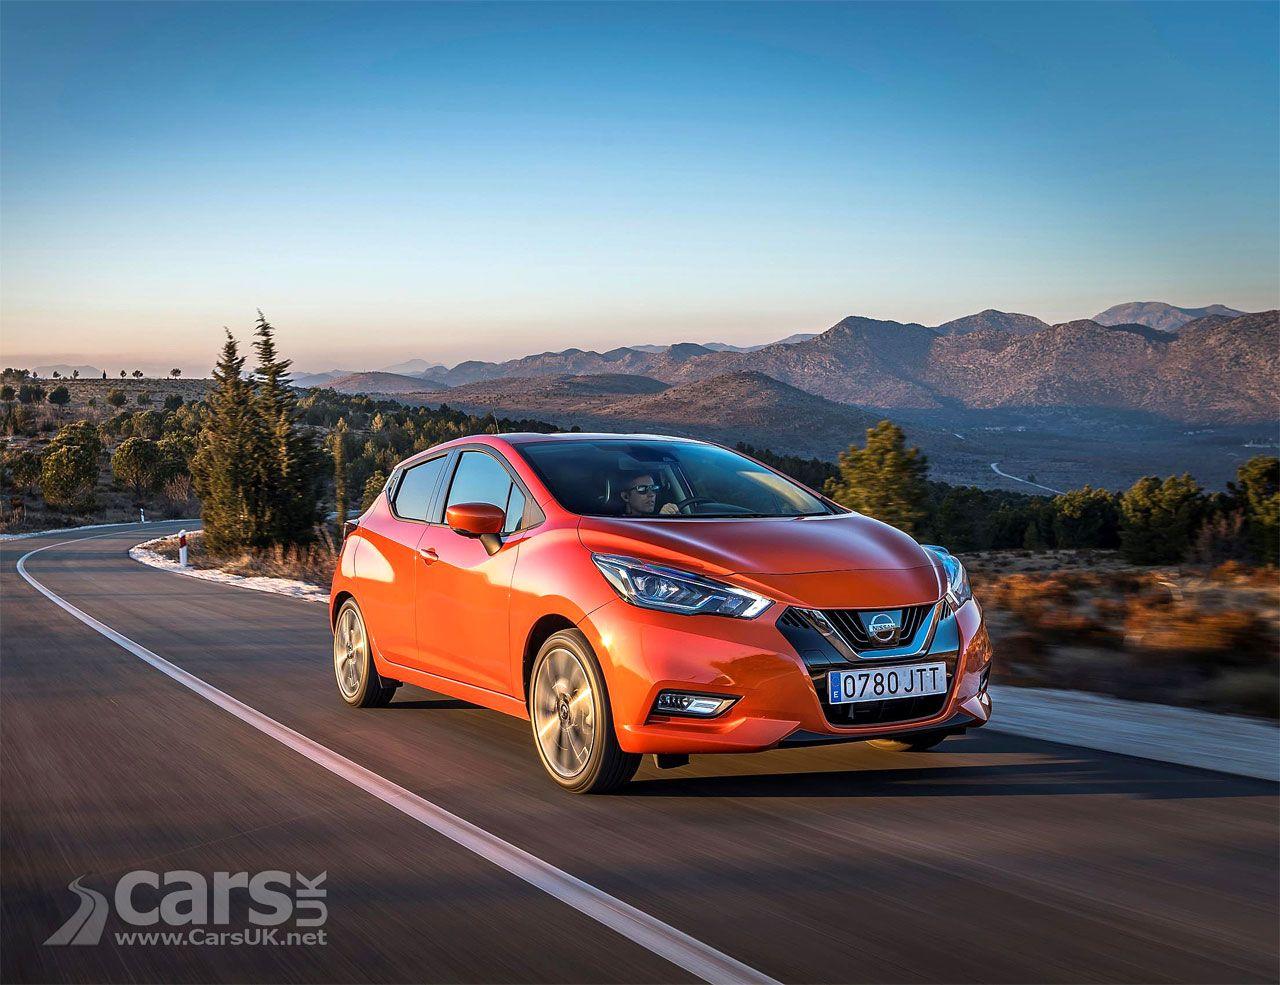 The new Nissan Micra, which went on sale in the UK in December, can now be had in the UK with the 1.0 litre naturally-aspirated, entry-level petrol engine.